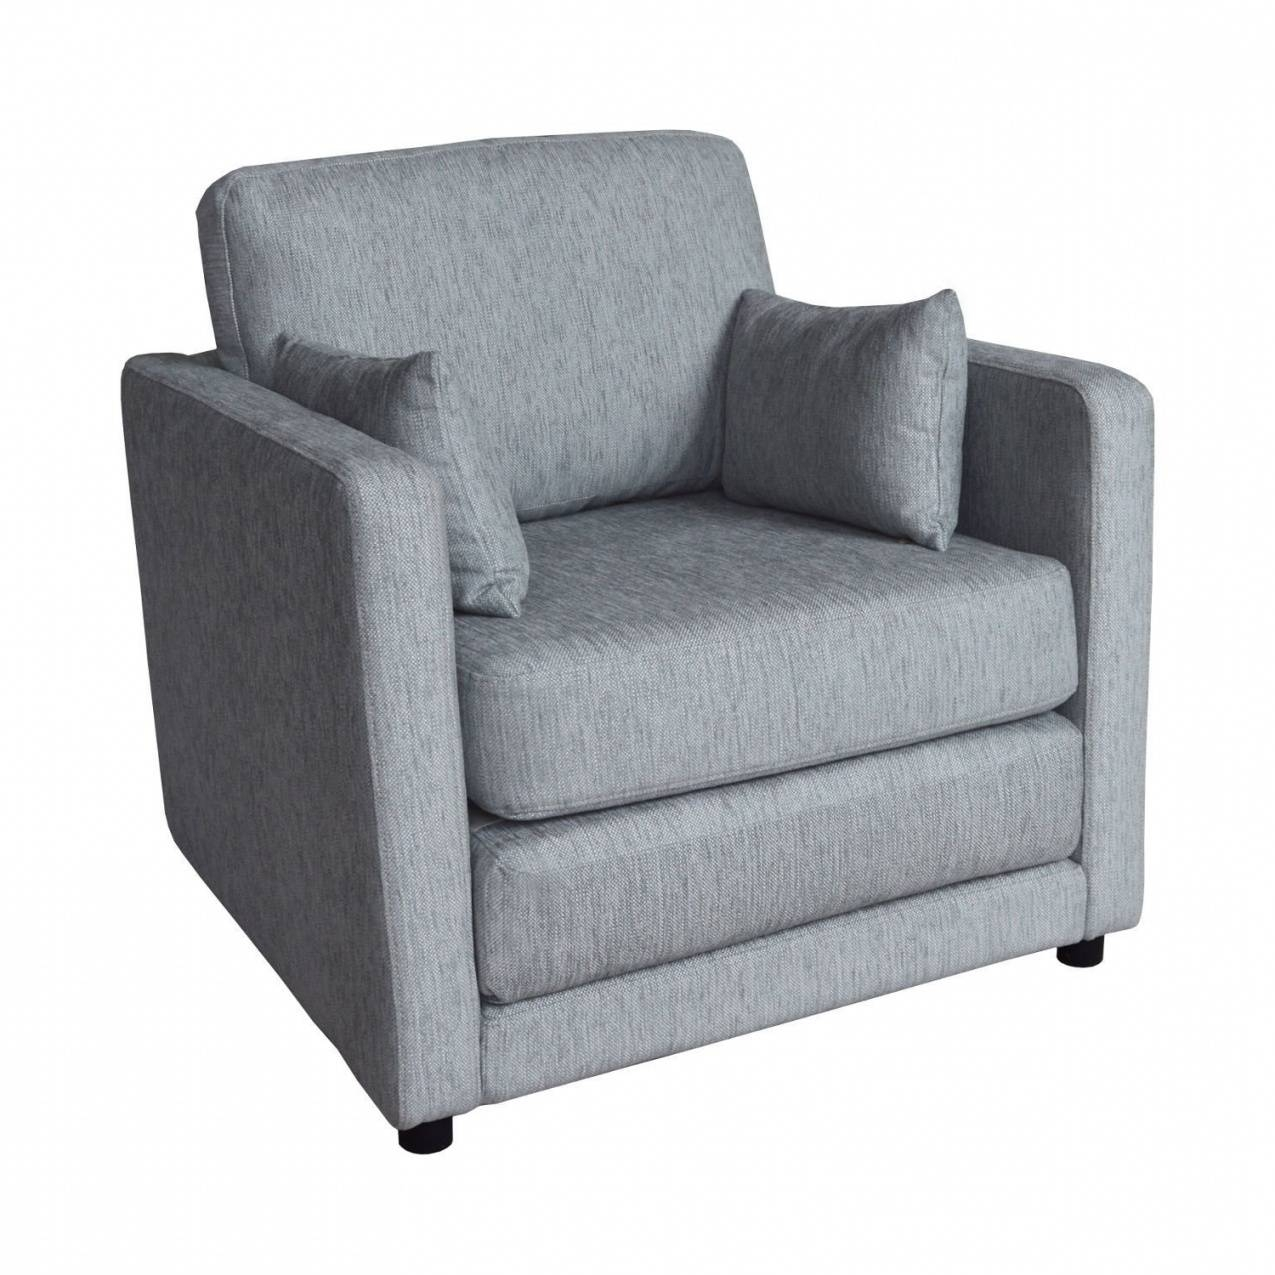 Single Chair Sofa Bed For Sale - Elite Home pertaining to Single Chair Sofa Bed (Image 13 of 30)